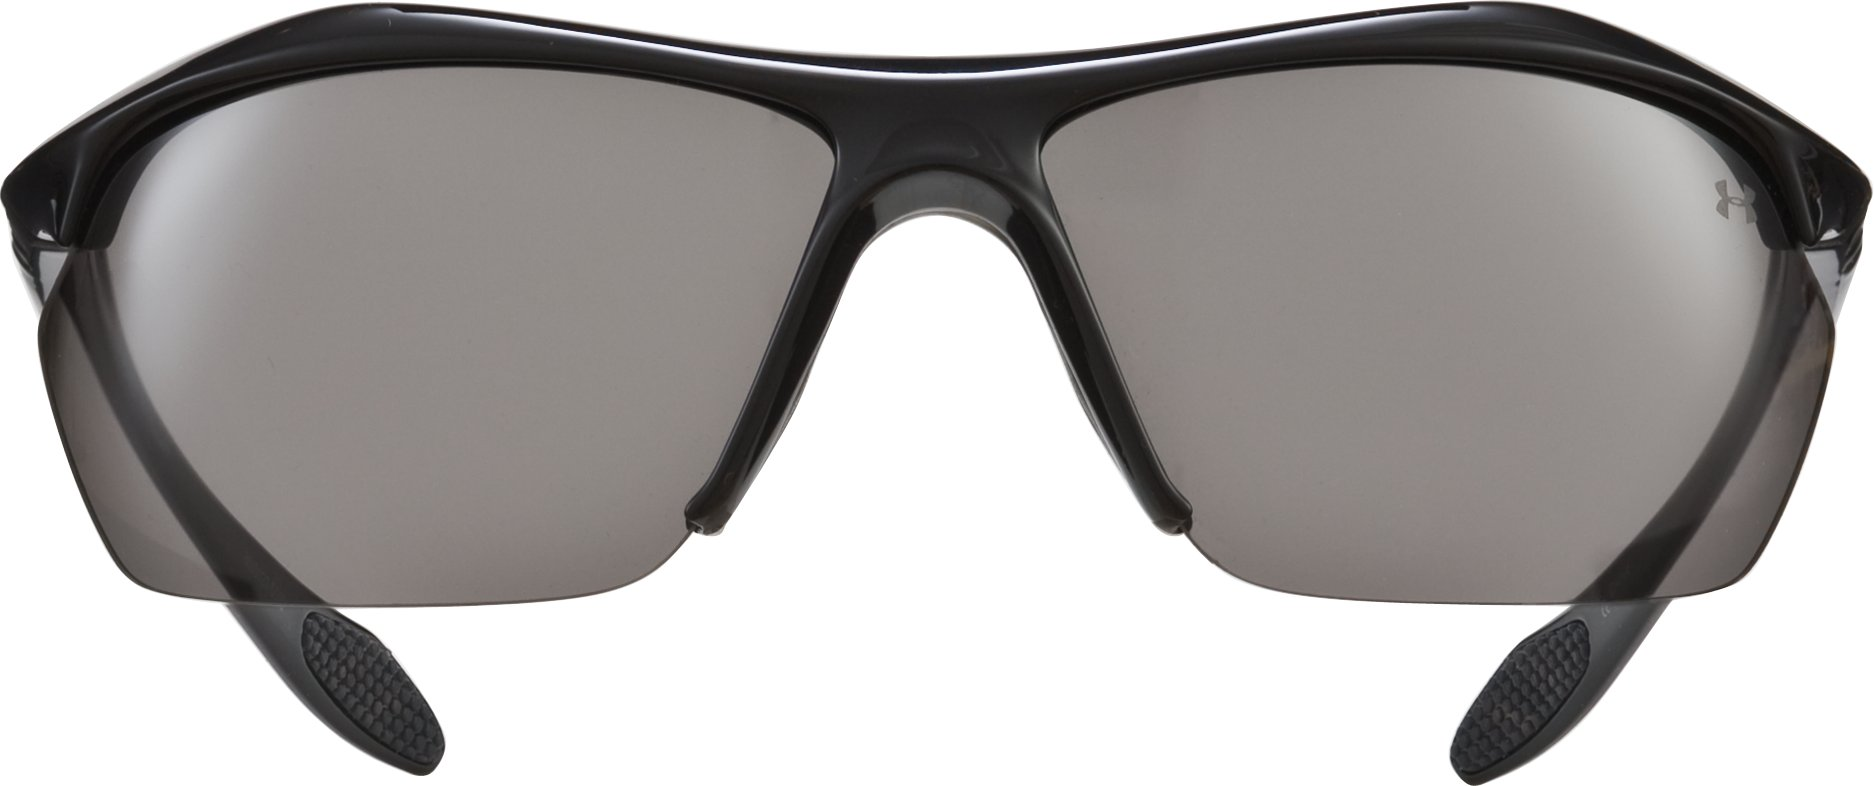 UA Zone XL Polarized Sunglasses, Shiny Black